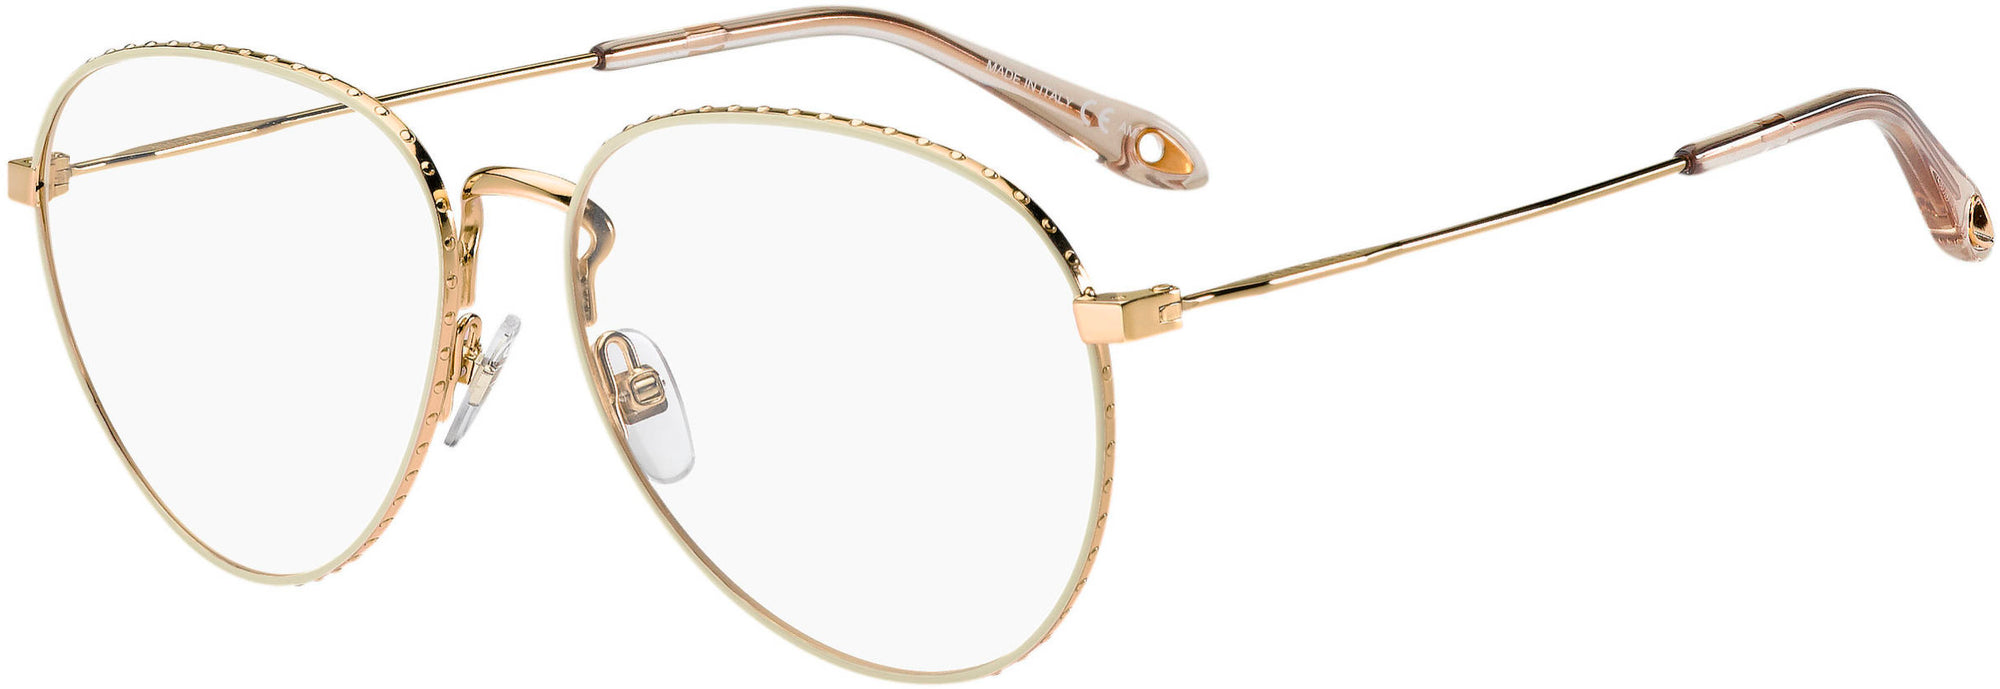 Givenchy GV 0071 Aviator Eyeglasses 084E-084E  Gold Beige (00 Demo Lens)